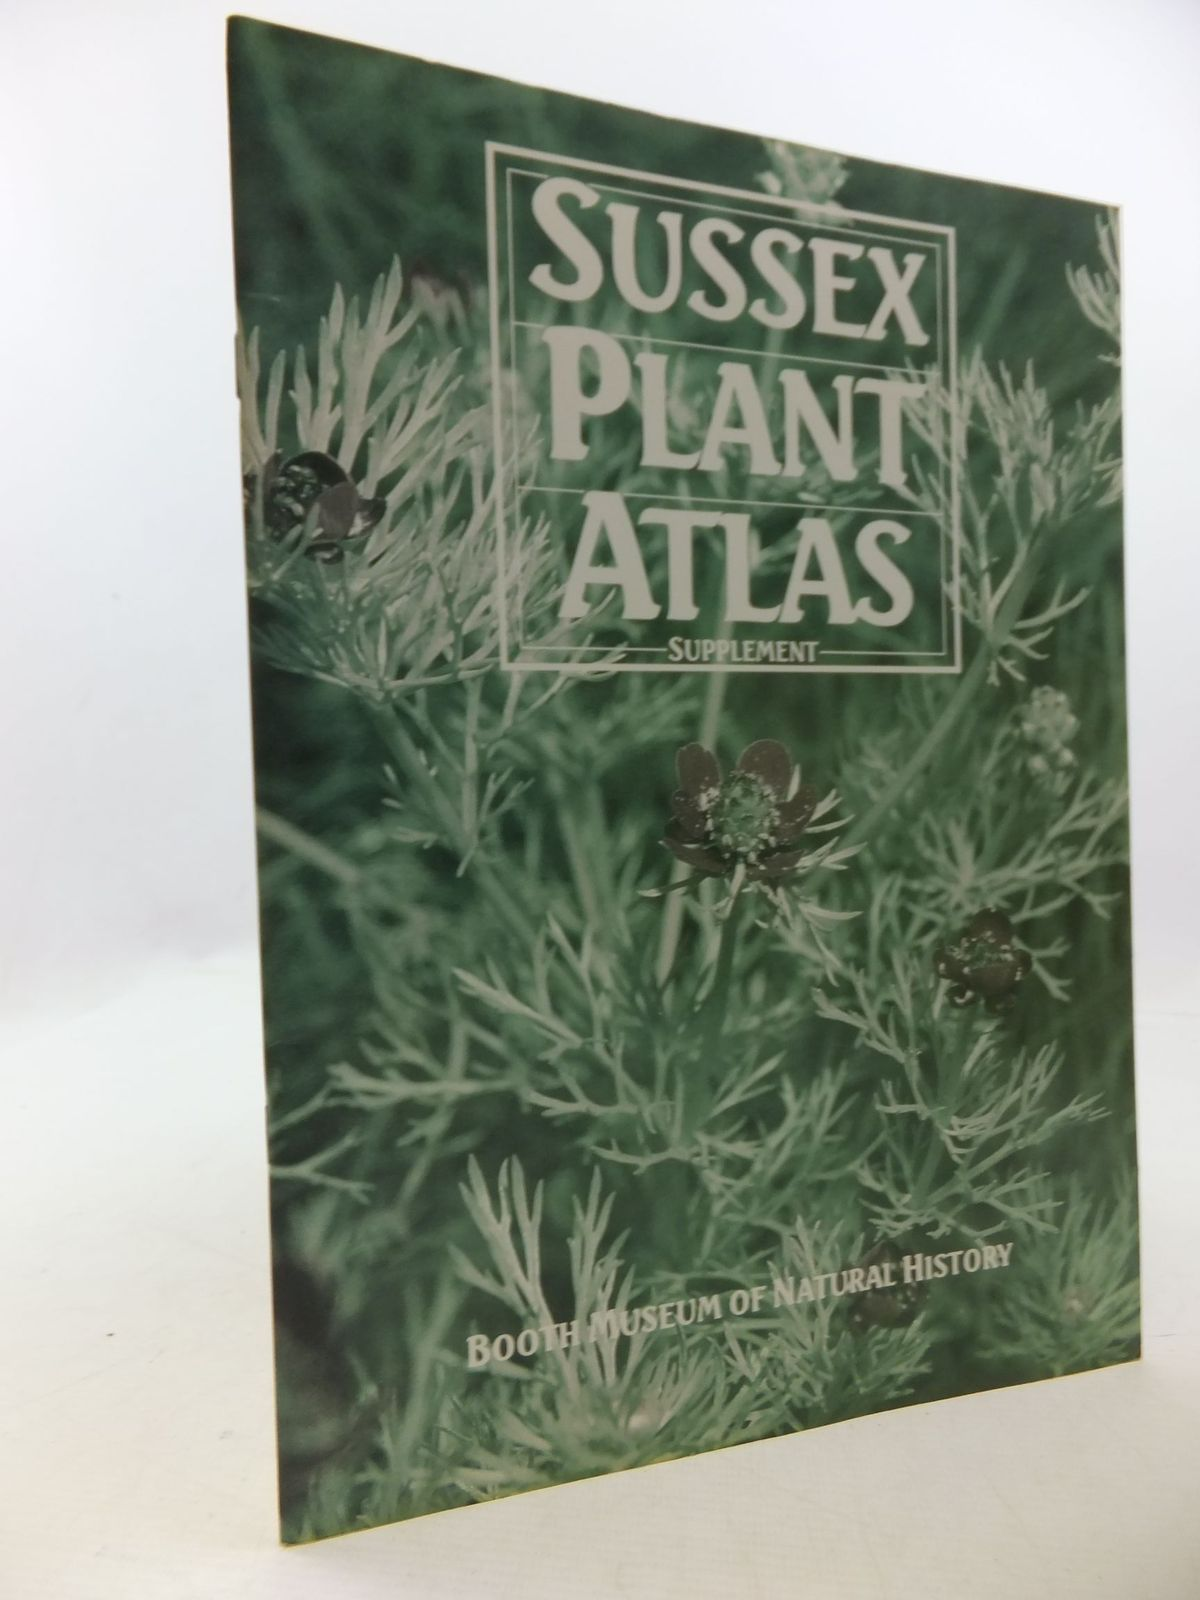 Photo of SUSSEX PLANT ATLAS SELECTED SUPPLEMENT written by Briggs, Mary published by Booth Museum Of Natural History (STOCK CODE: 2112502)  for sale by Stella & Rose's Books